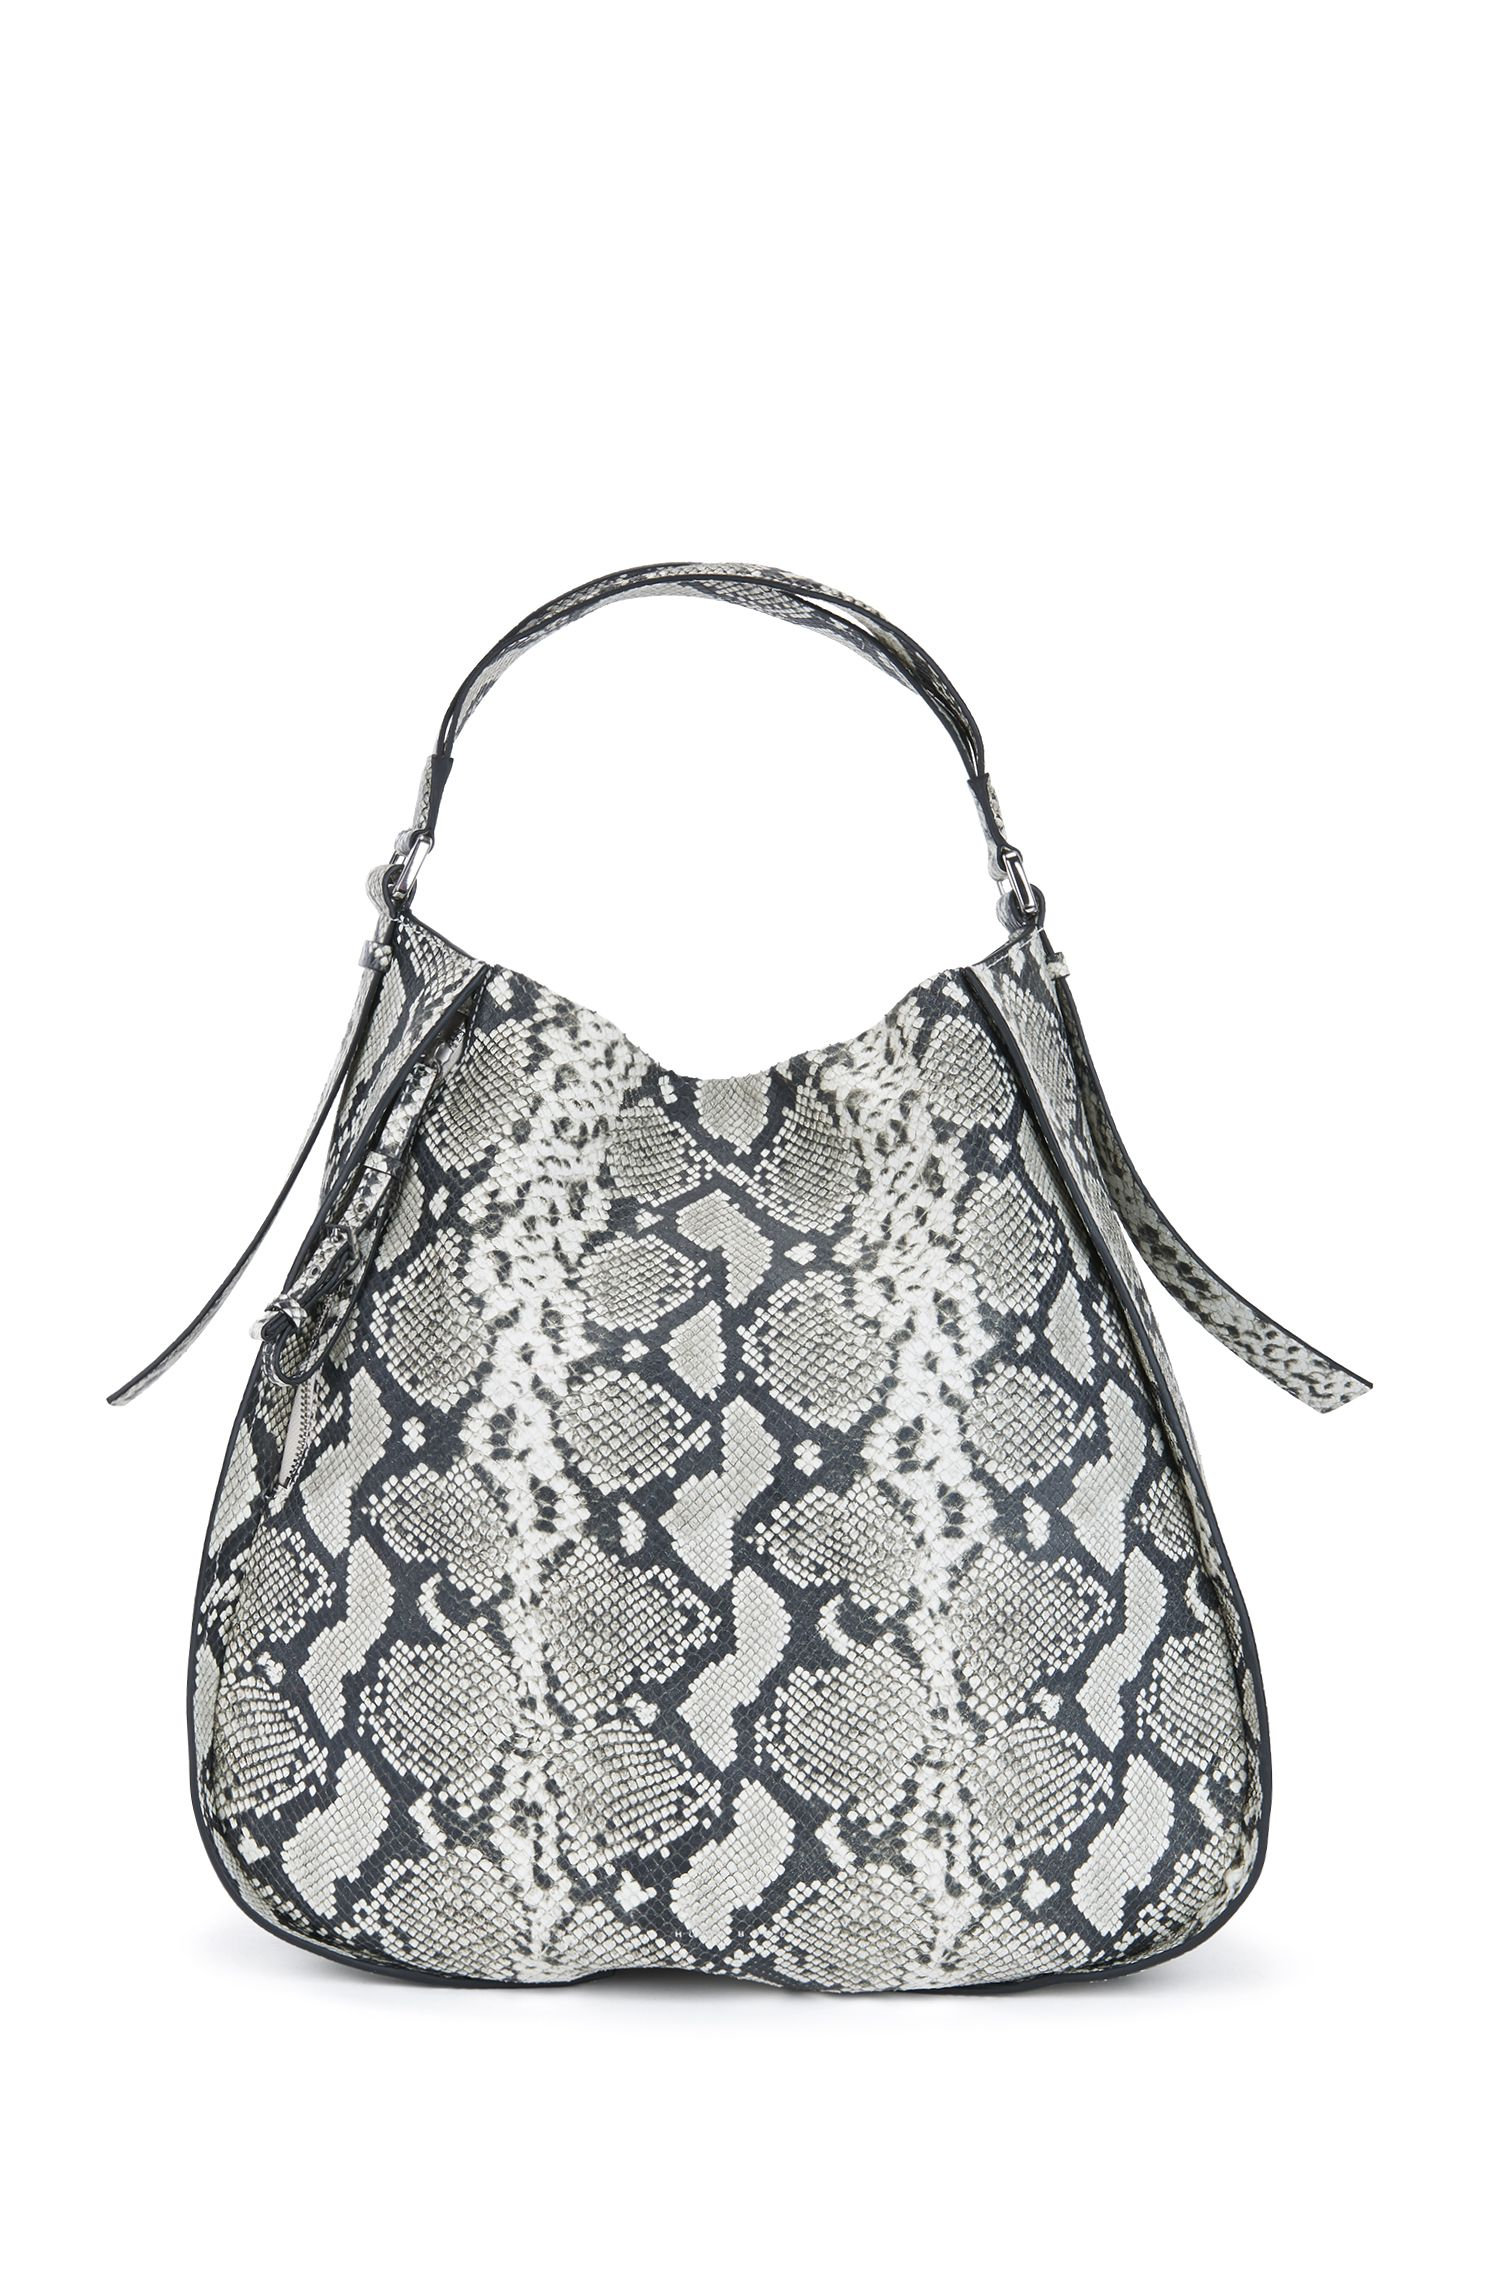 Python-printed hobo bag in Italian leather